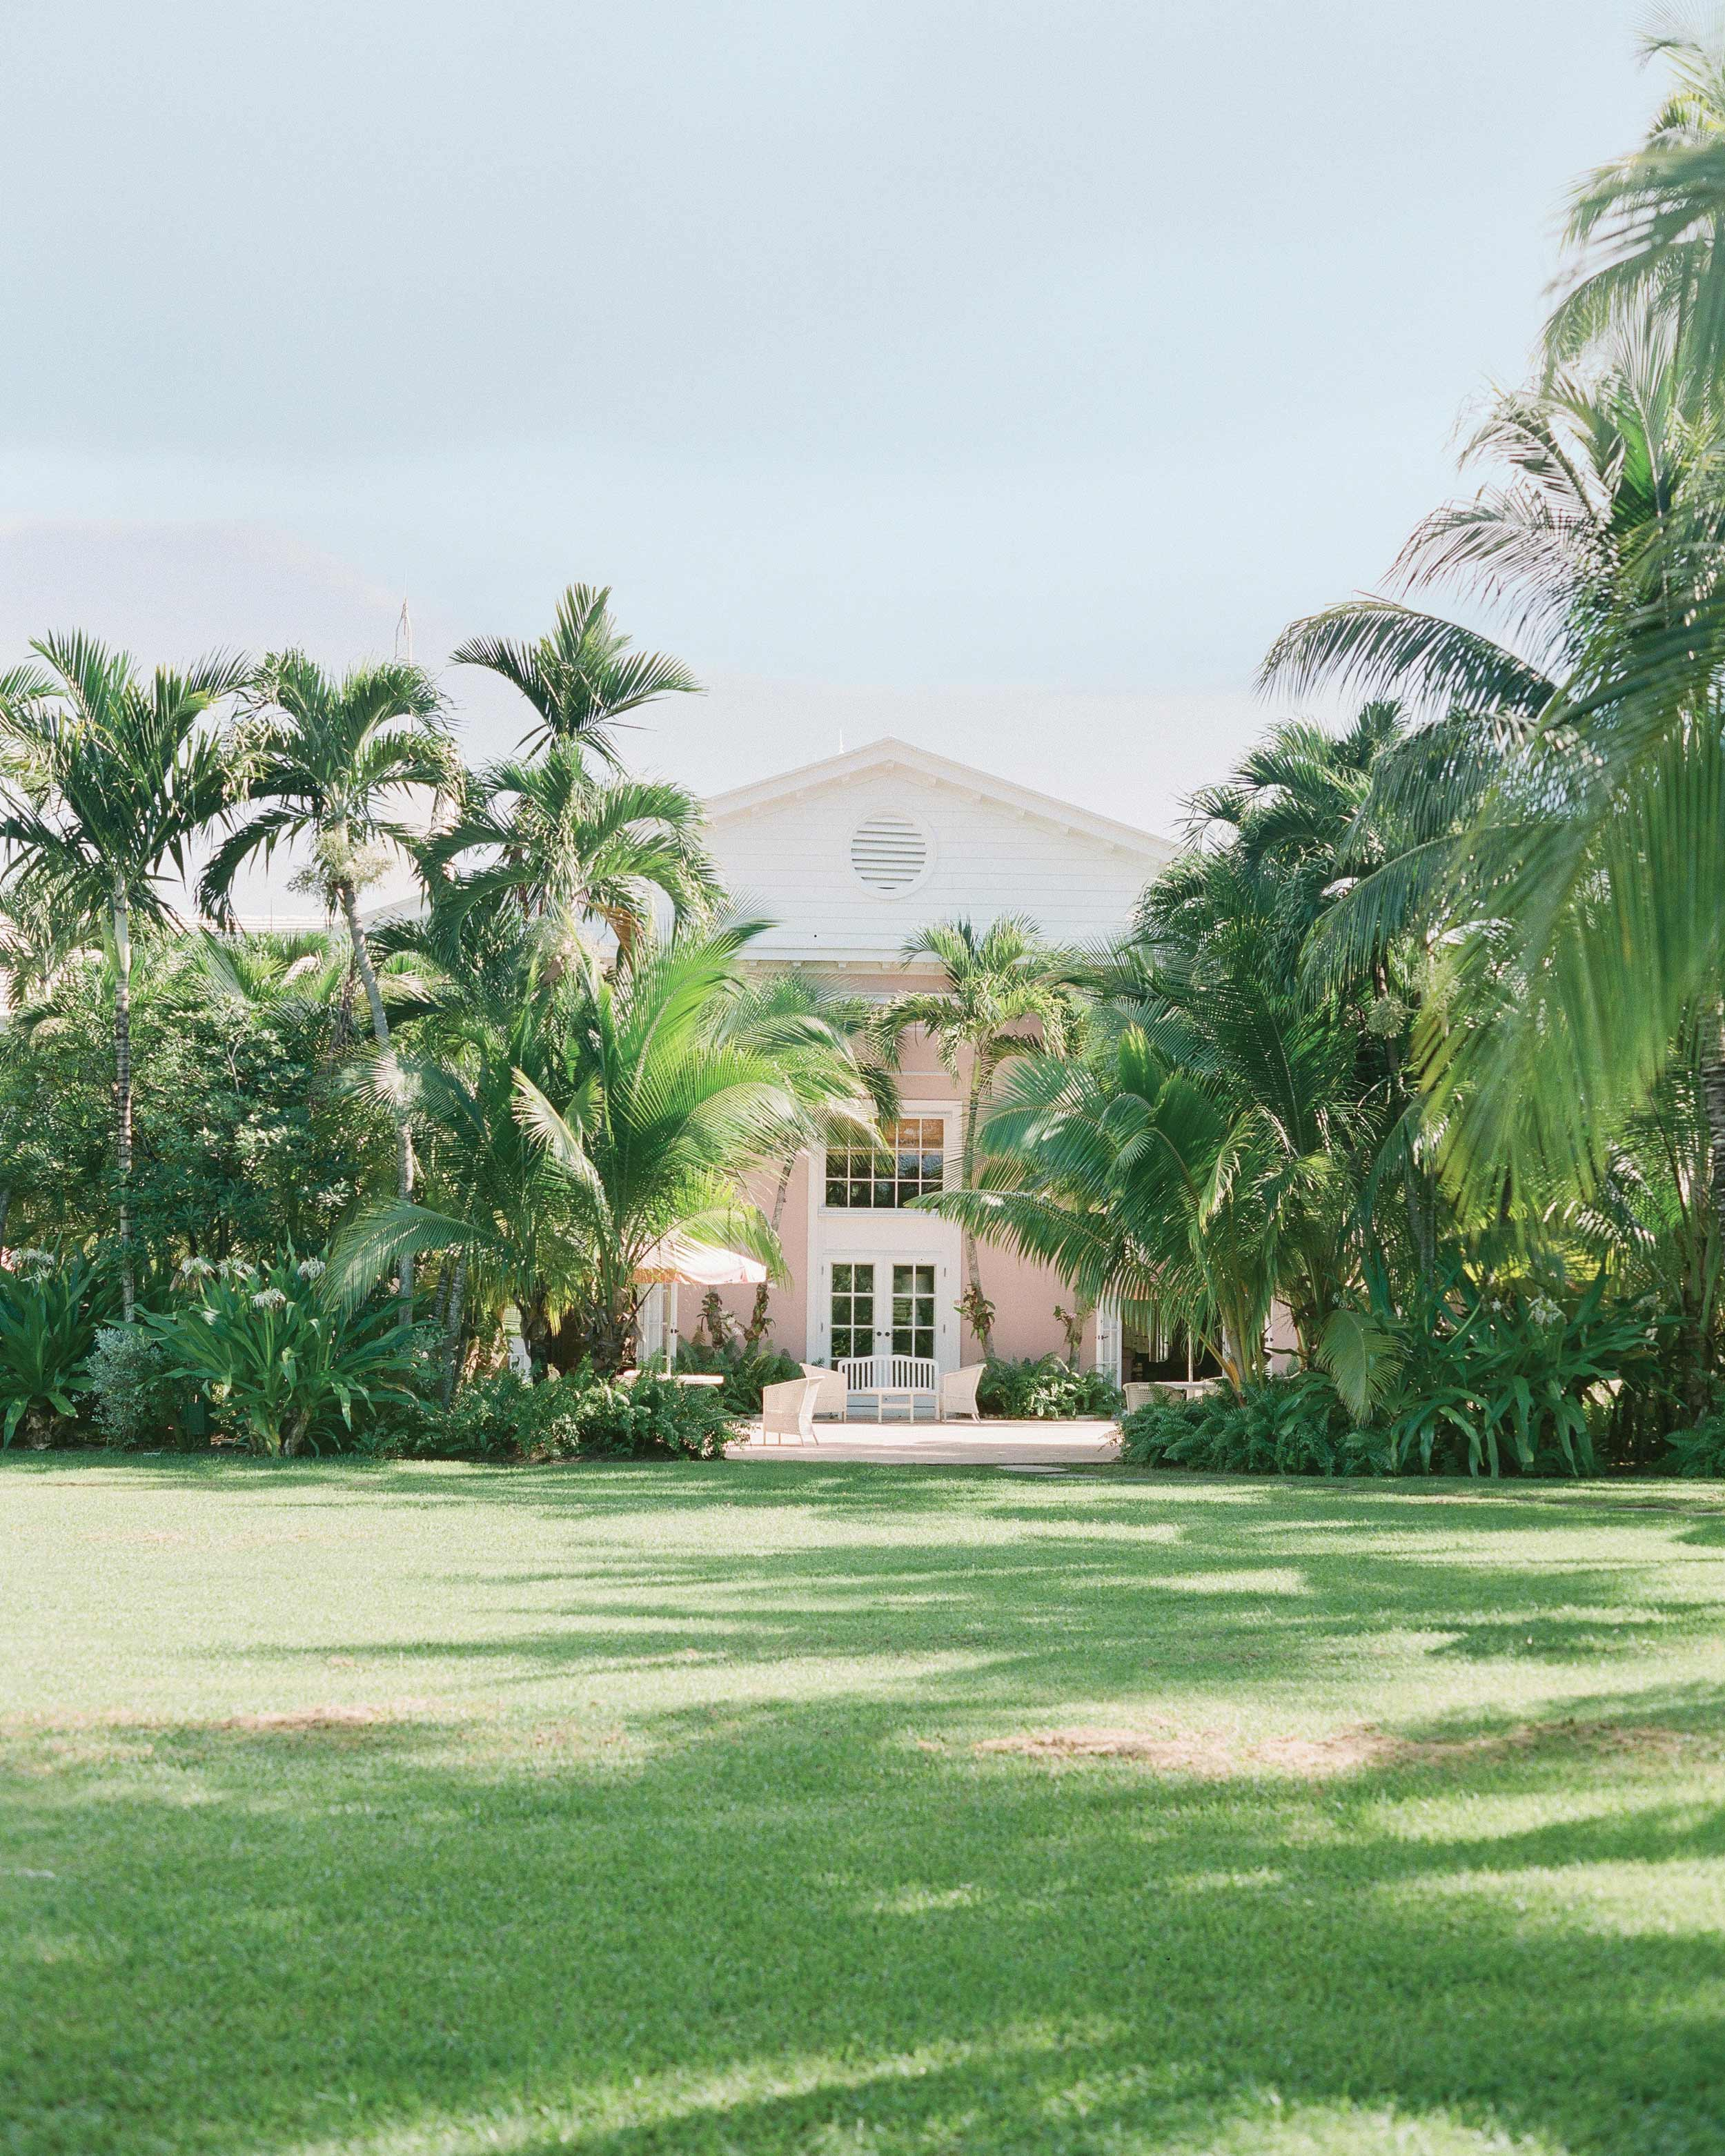 kelsey-casey-real-wedding-tropical-location.jpg